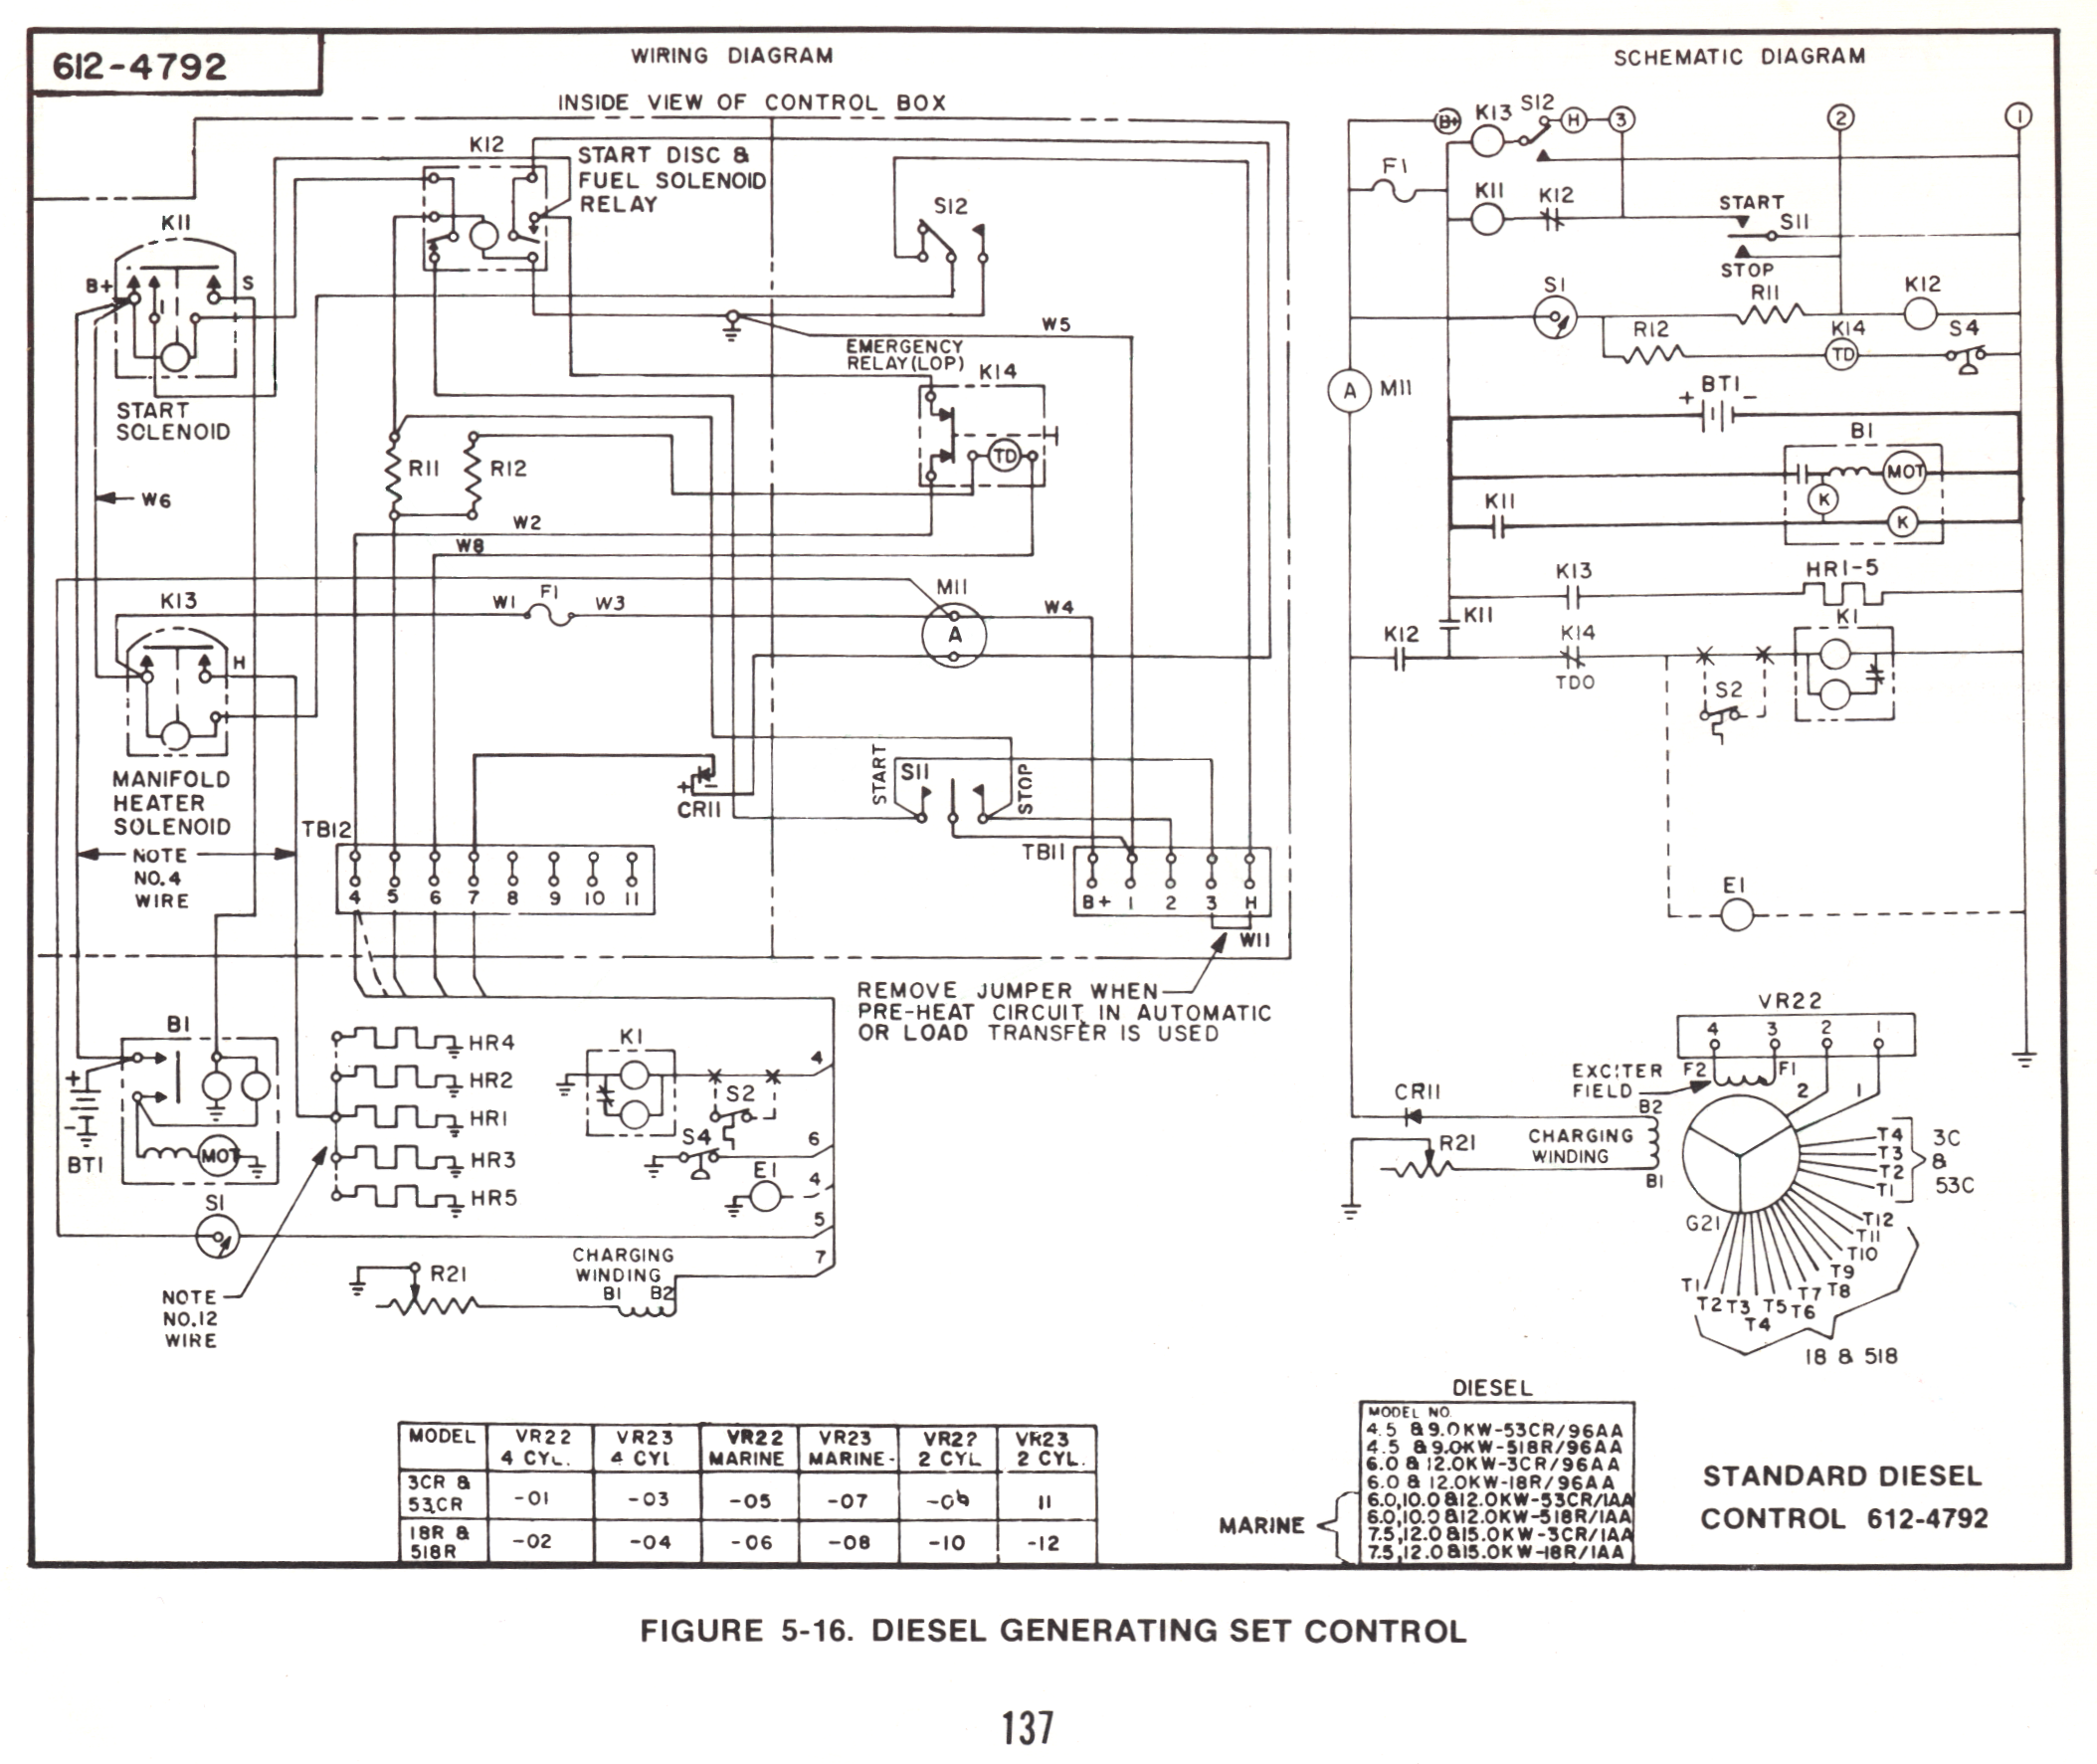 Onan_Diesel_Controls_612 4792_b onan generator wiring diagram onan generator wiring diagram wiring diagram for onan rv generator at readyjetset.co